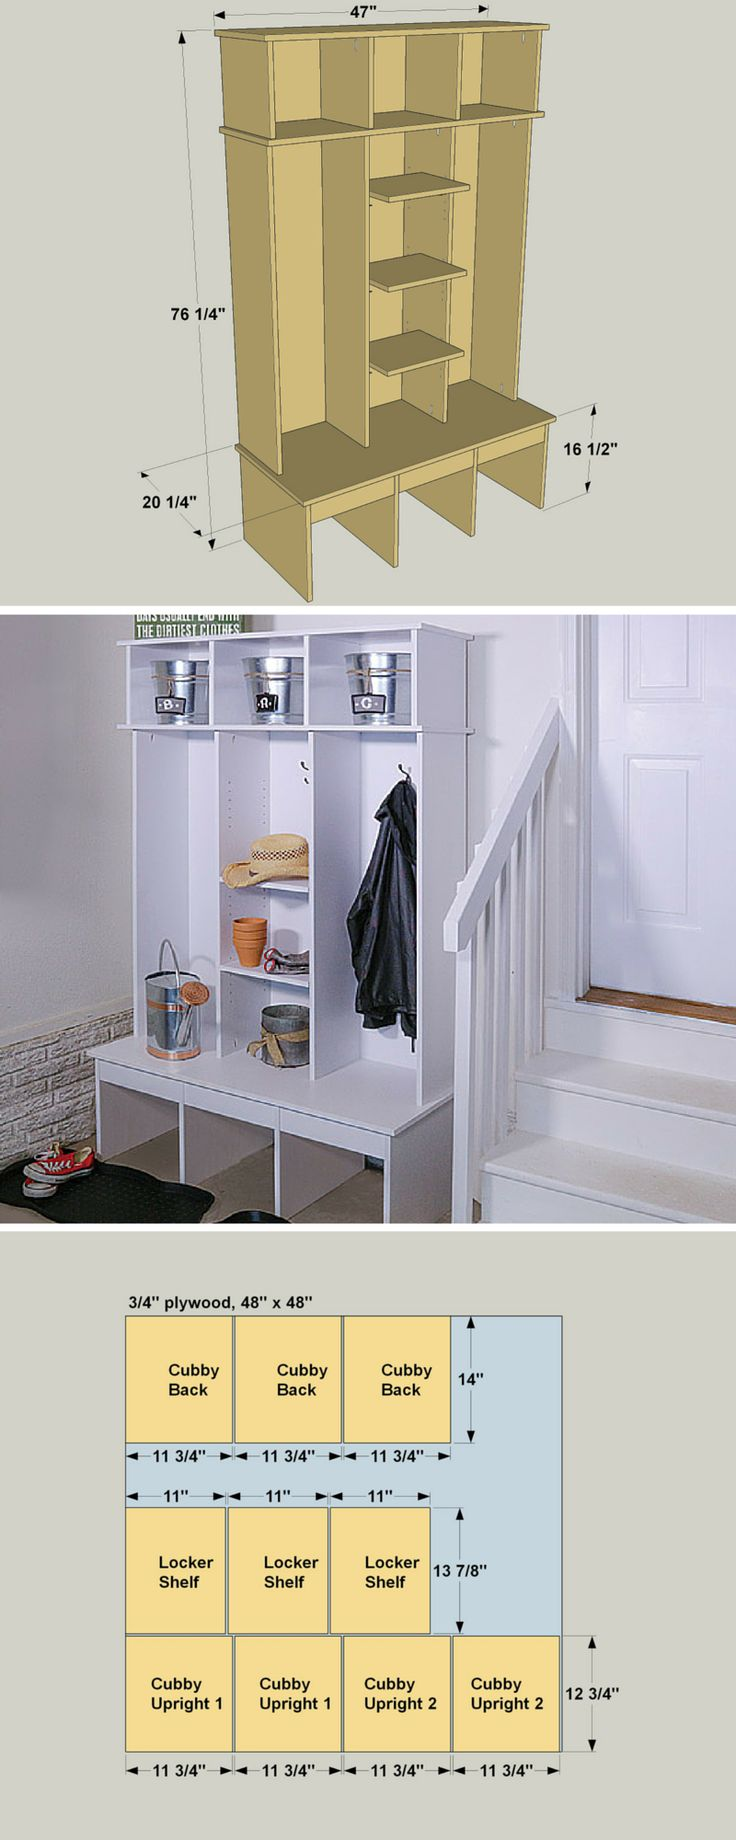 This entryway organizer hold coats, hats, gloves, and more to keep clutter under control, and looks great doing it. You can build one yourself using several basic tools, a few pieces of plywood, one board and some inexpensive molding. With a shelf-pin jig, and you can add adjustable shelves, too. Get the free DIY plans at buildsomething.com